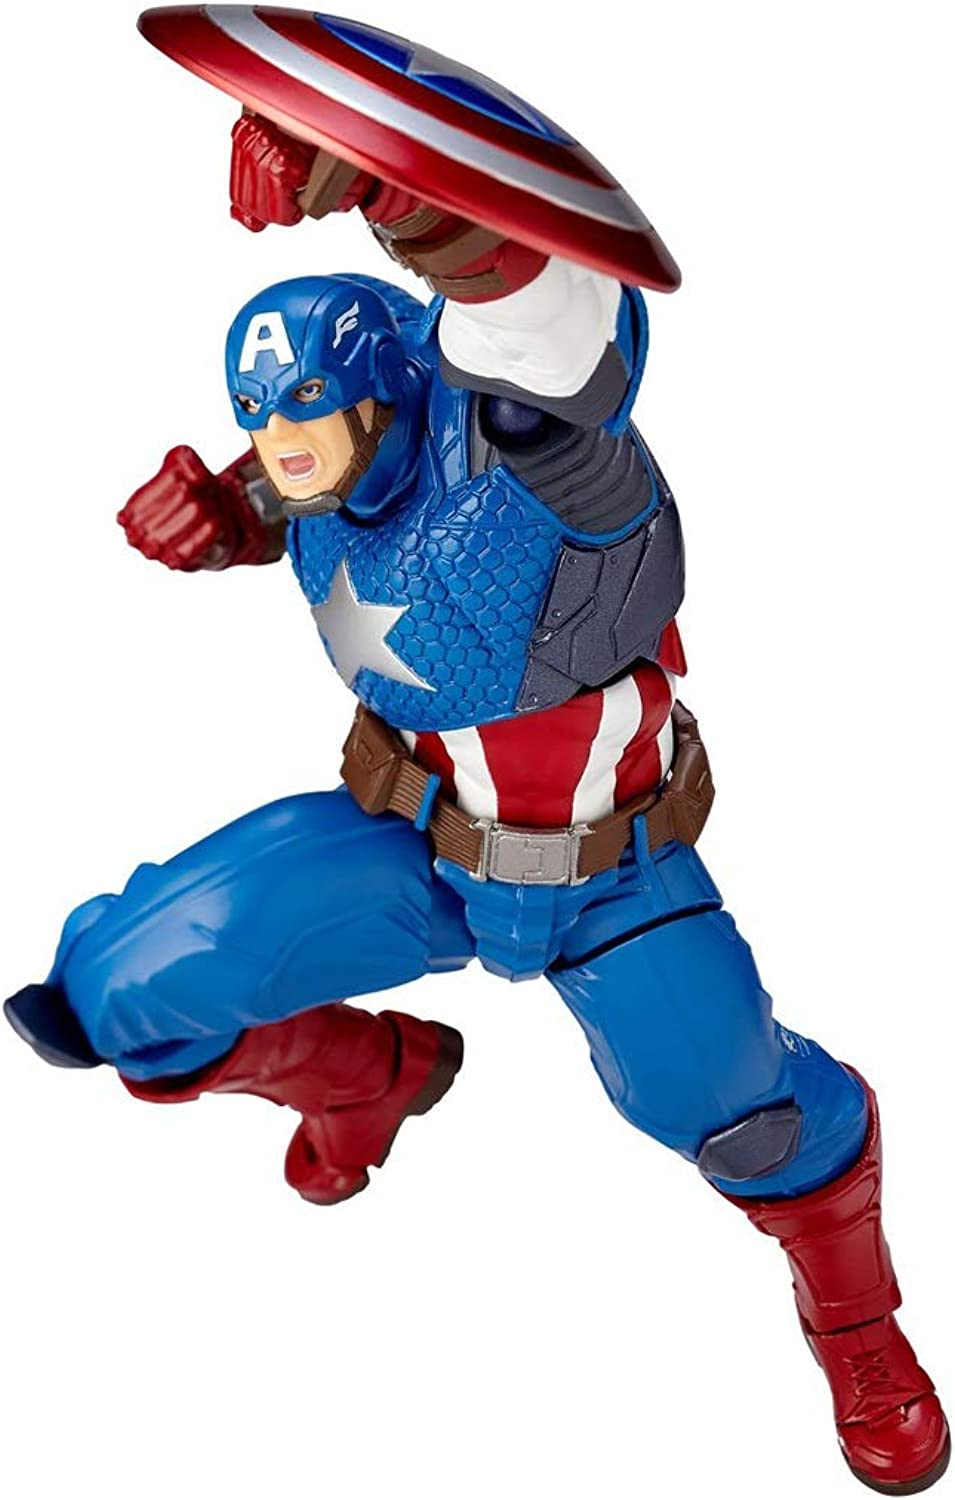 Captain America Revoltech Action Figure Approximately 165 Mm ABS & PVC Painted Action Figure